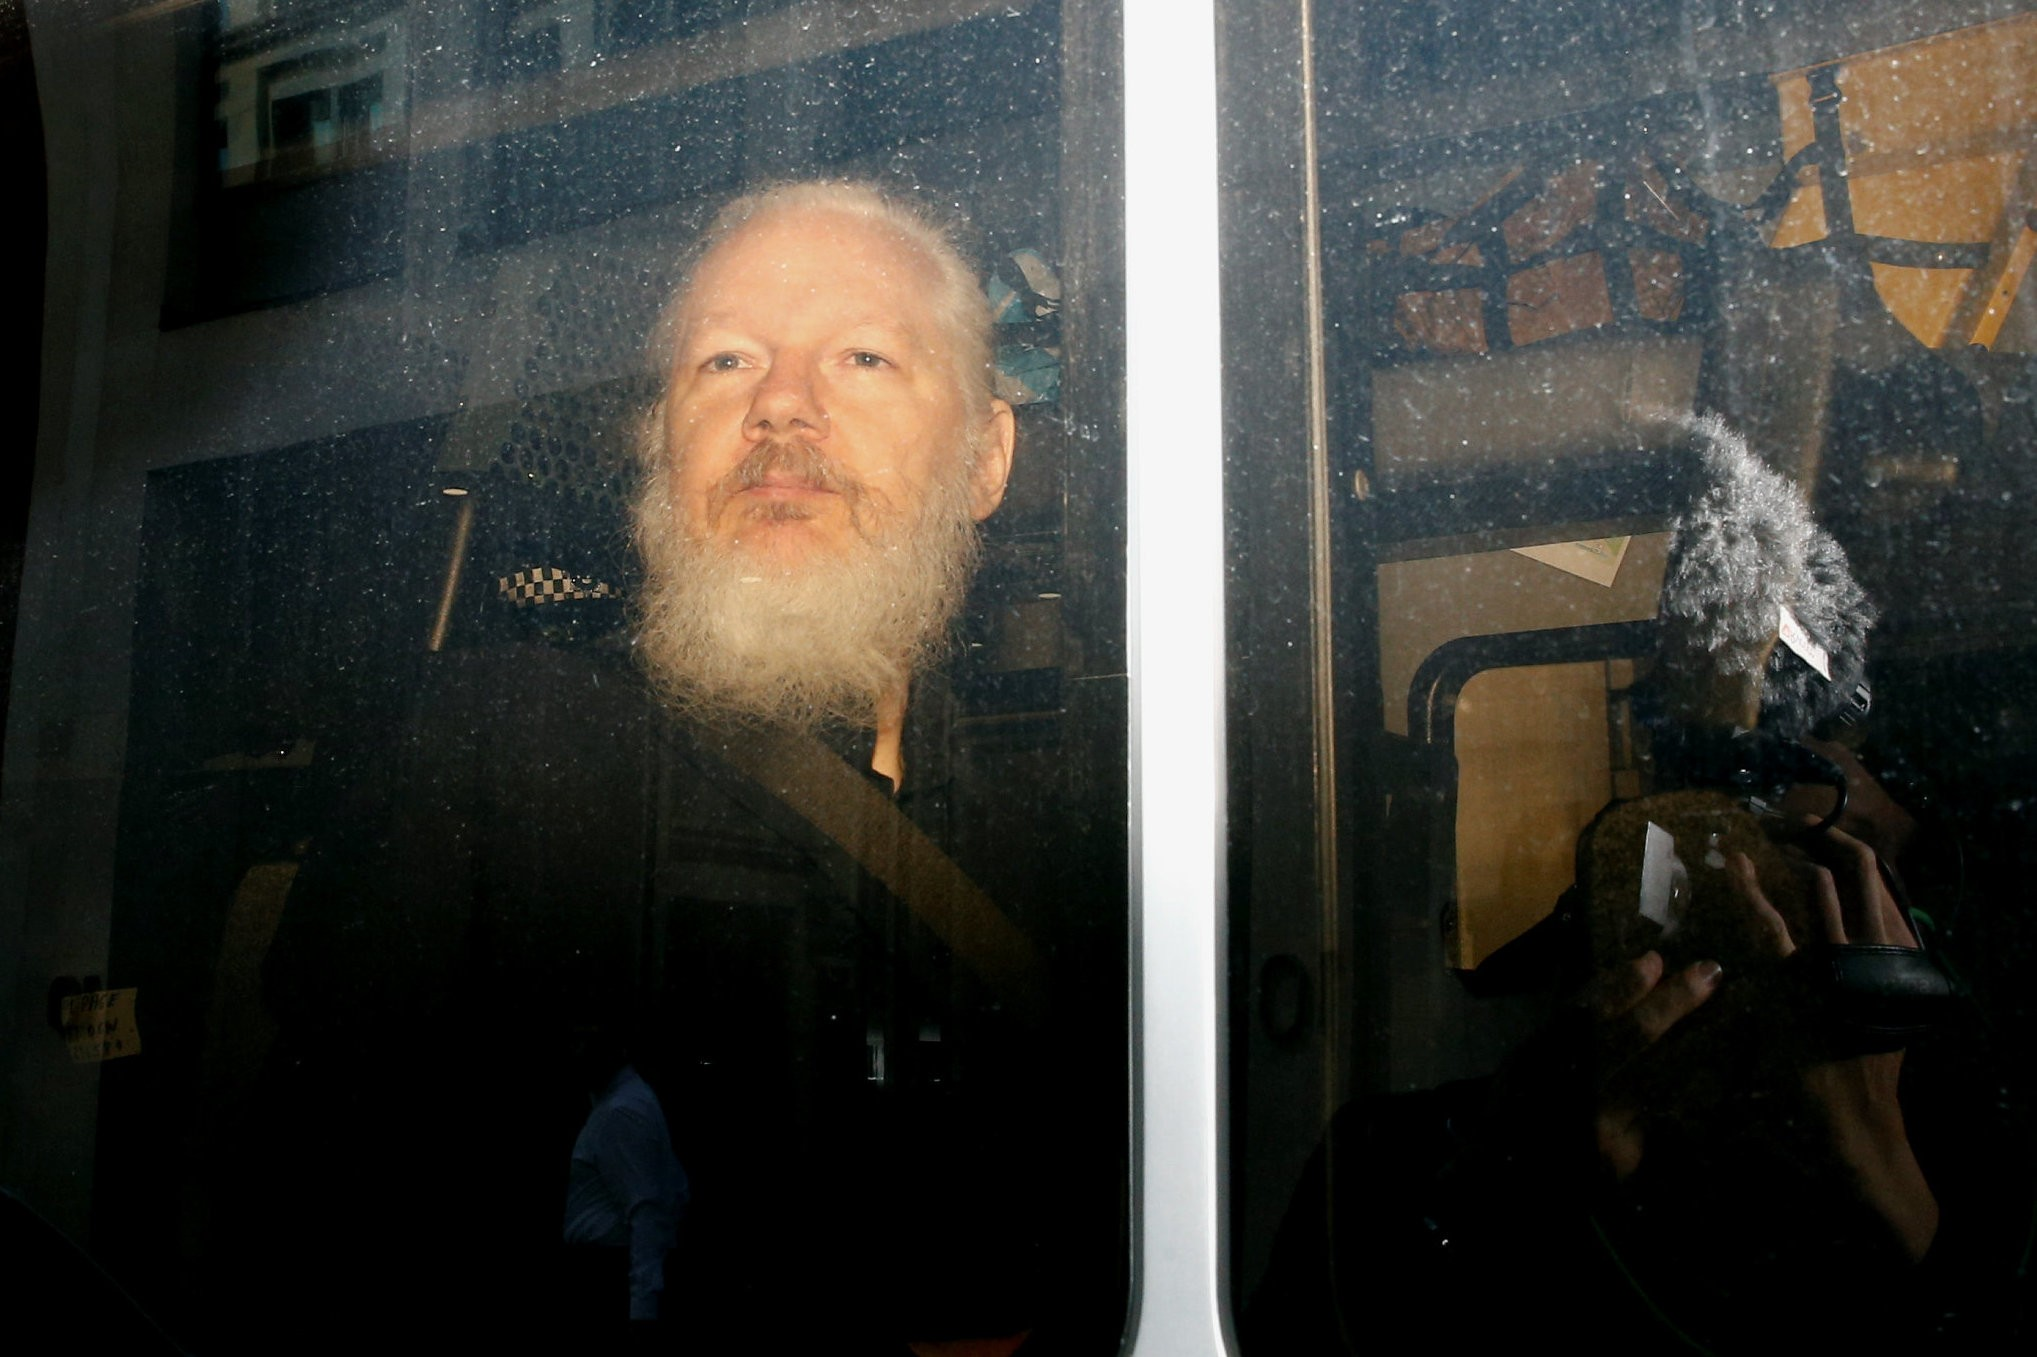 Julian Assange, the founder of WikiLeaks, was arrested Thursday at the Ecuadorean Embassy in London, where he had sheltered since 2012. Credit Henry Nicholls/Reuters